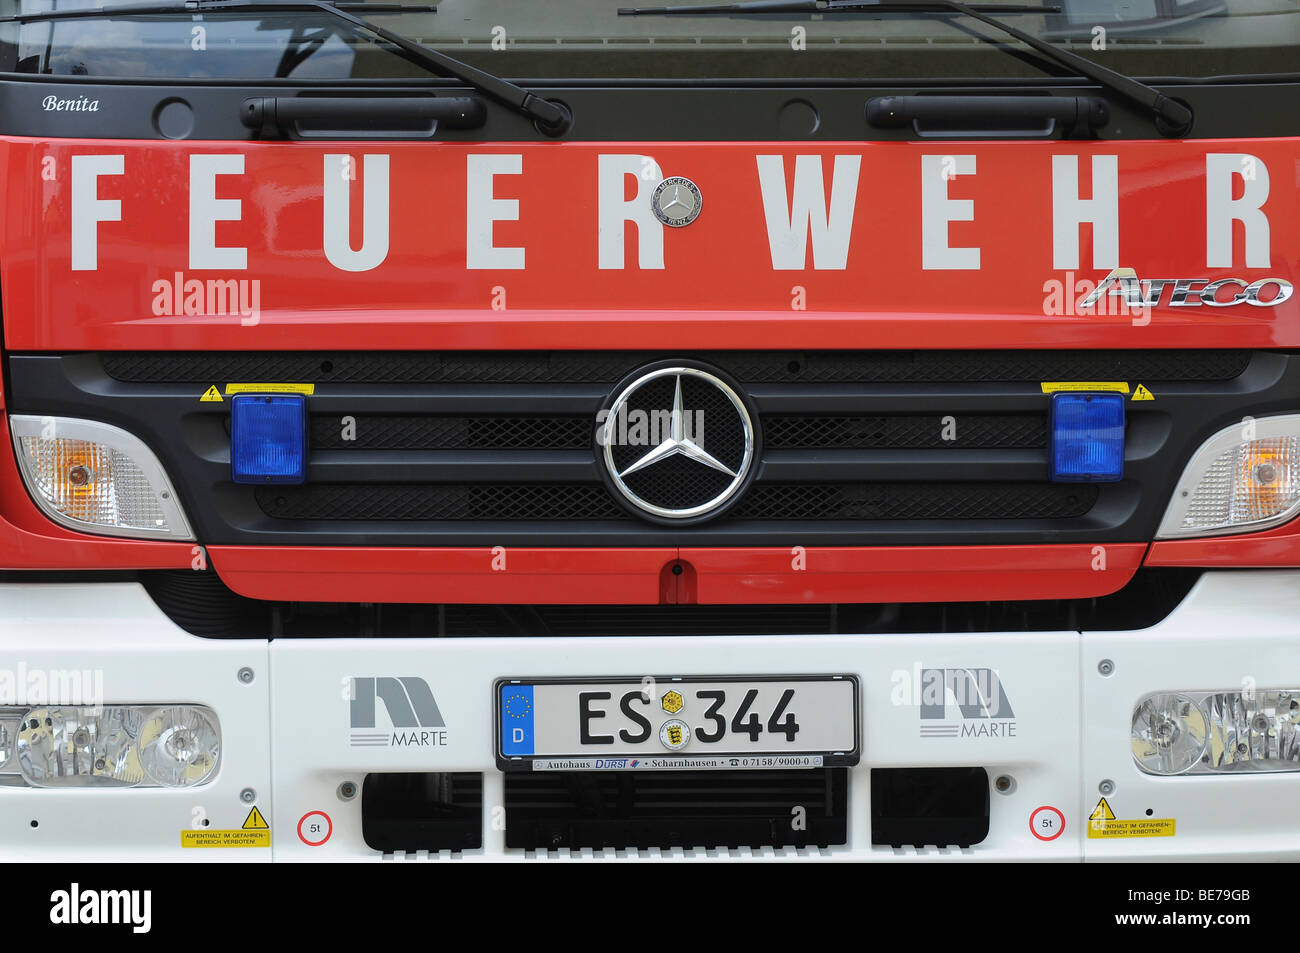 Fire truck - Stock Image